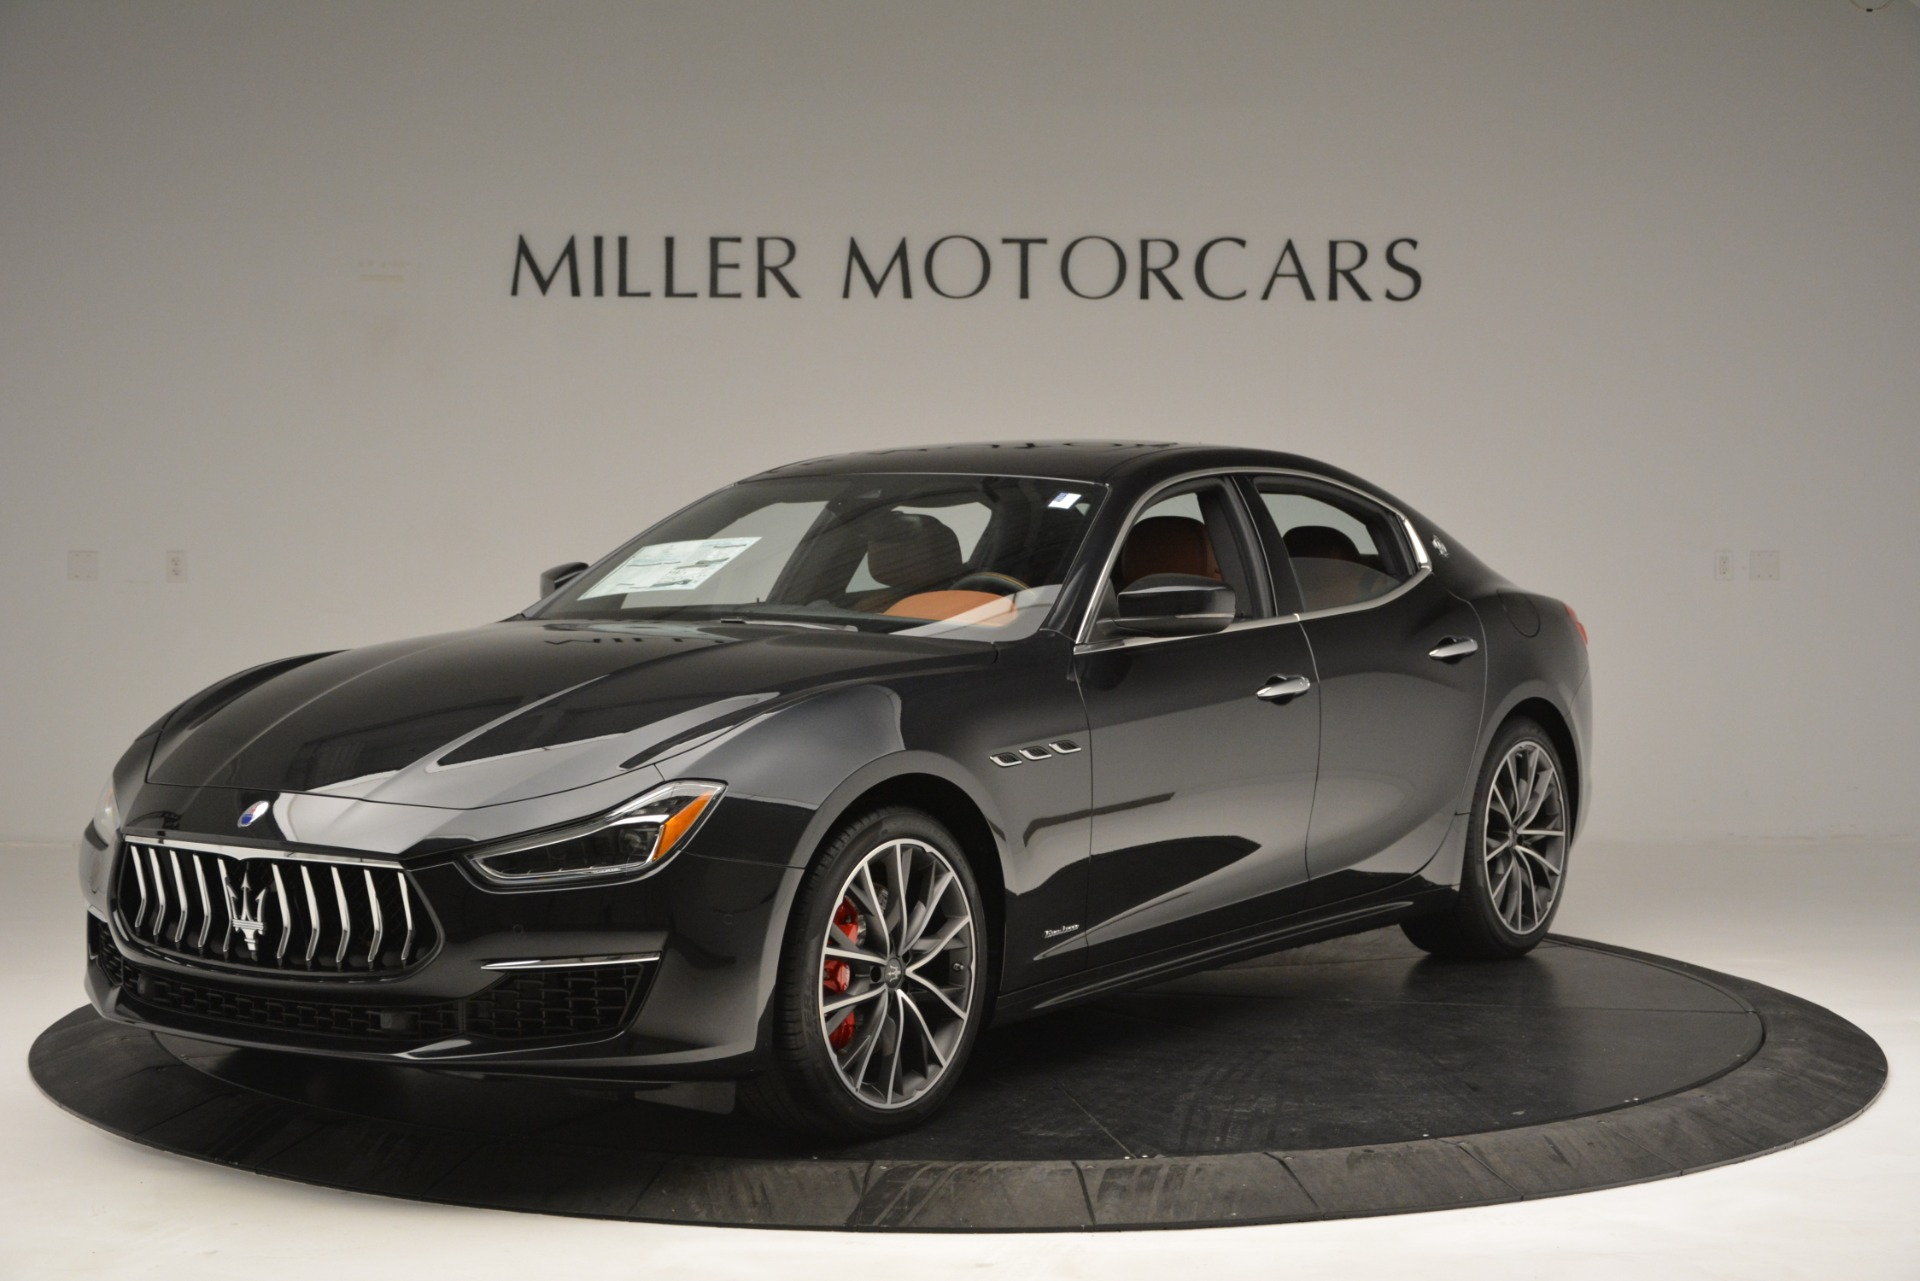 New 2019 Maserati Ghibli S Q4 GranLusso For Sale In Greenwich, CT. Alfa Romeo of Greenwich, M2223 2590_p2